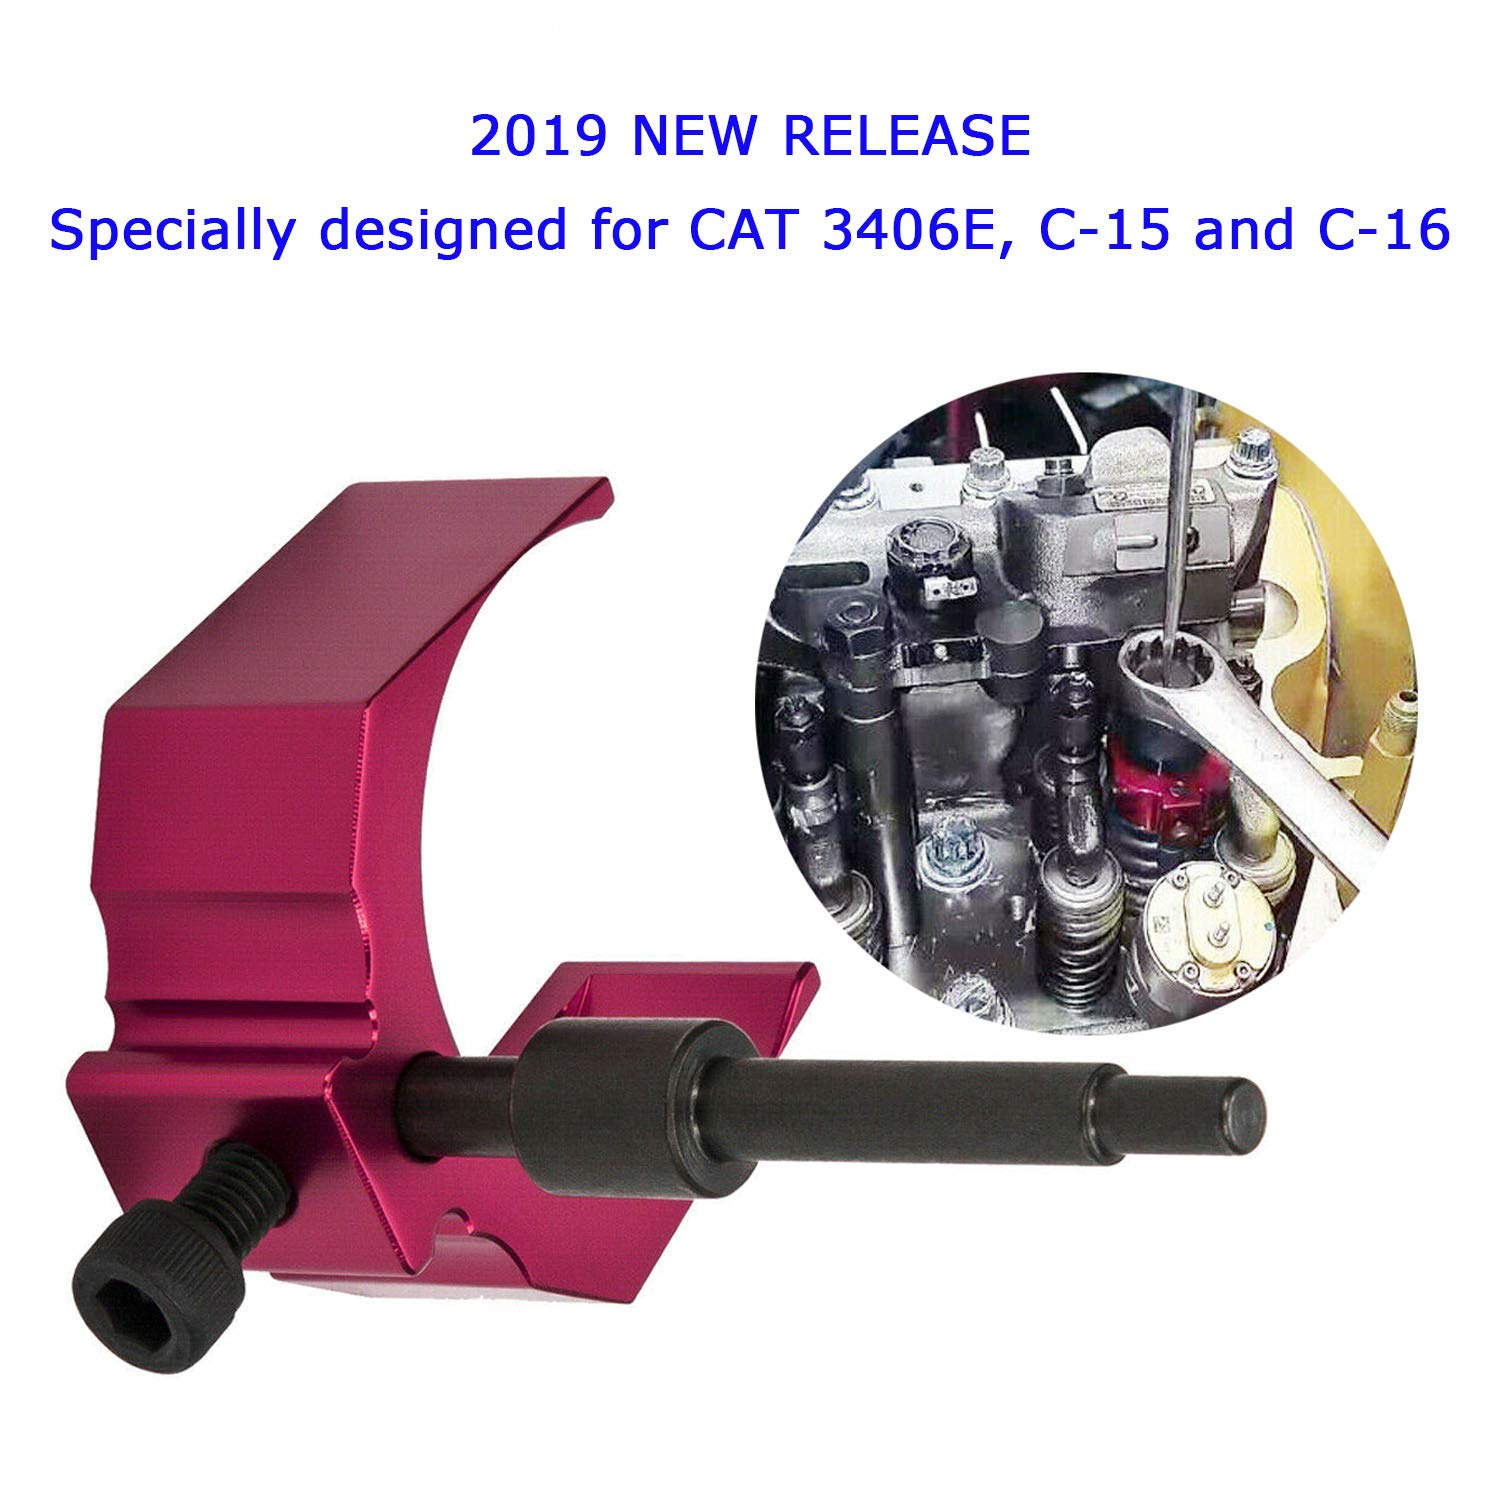 C-15 and C-16 Injector Height Tool for Caterpiller 3406E Alternative to 9U-7227 CAT Valve Timing Tool